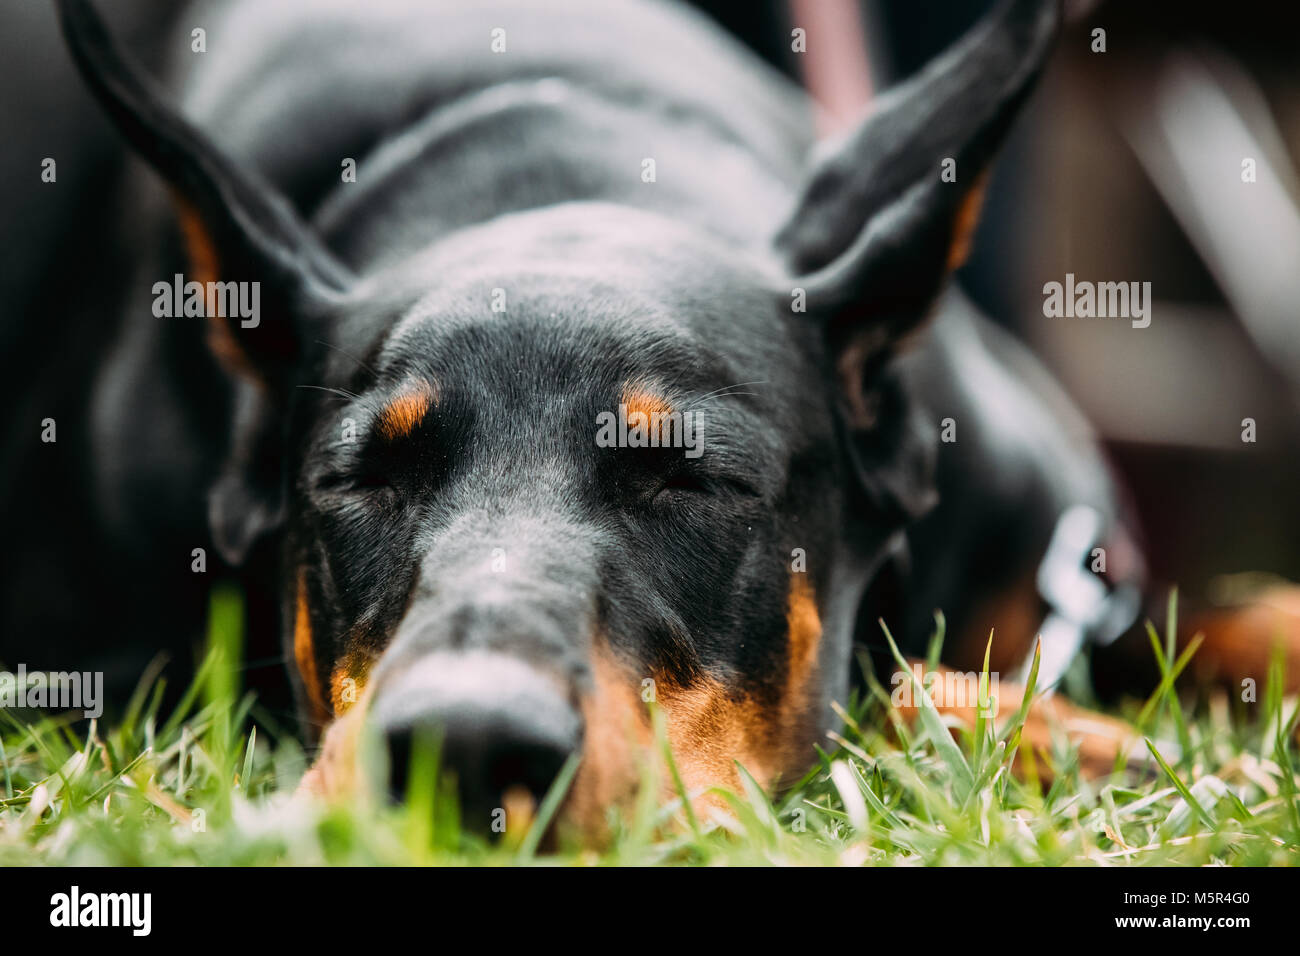 Young, Beautiful, Black And Tan Doberman Resting In Green Grass. Dobermann Is A Breed Known For Being Intelligent, - Stock Image